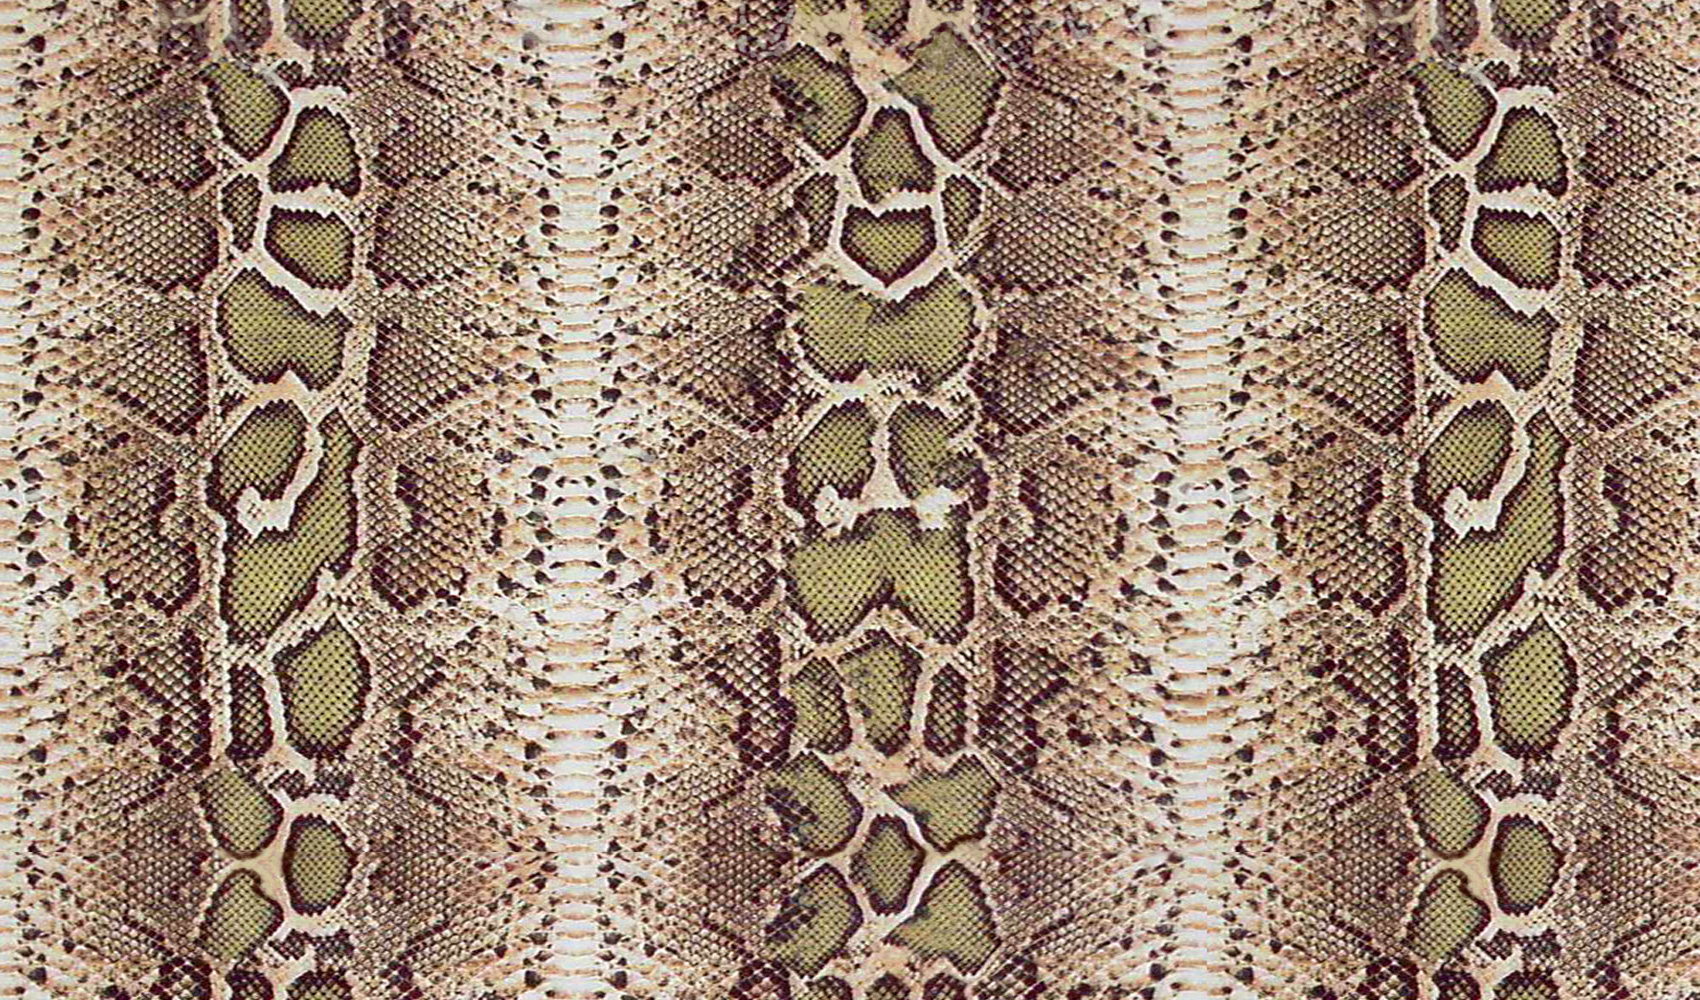 Alligator Skin Print Wallpaper Wallpapersafari